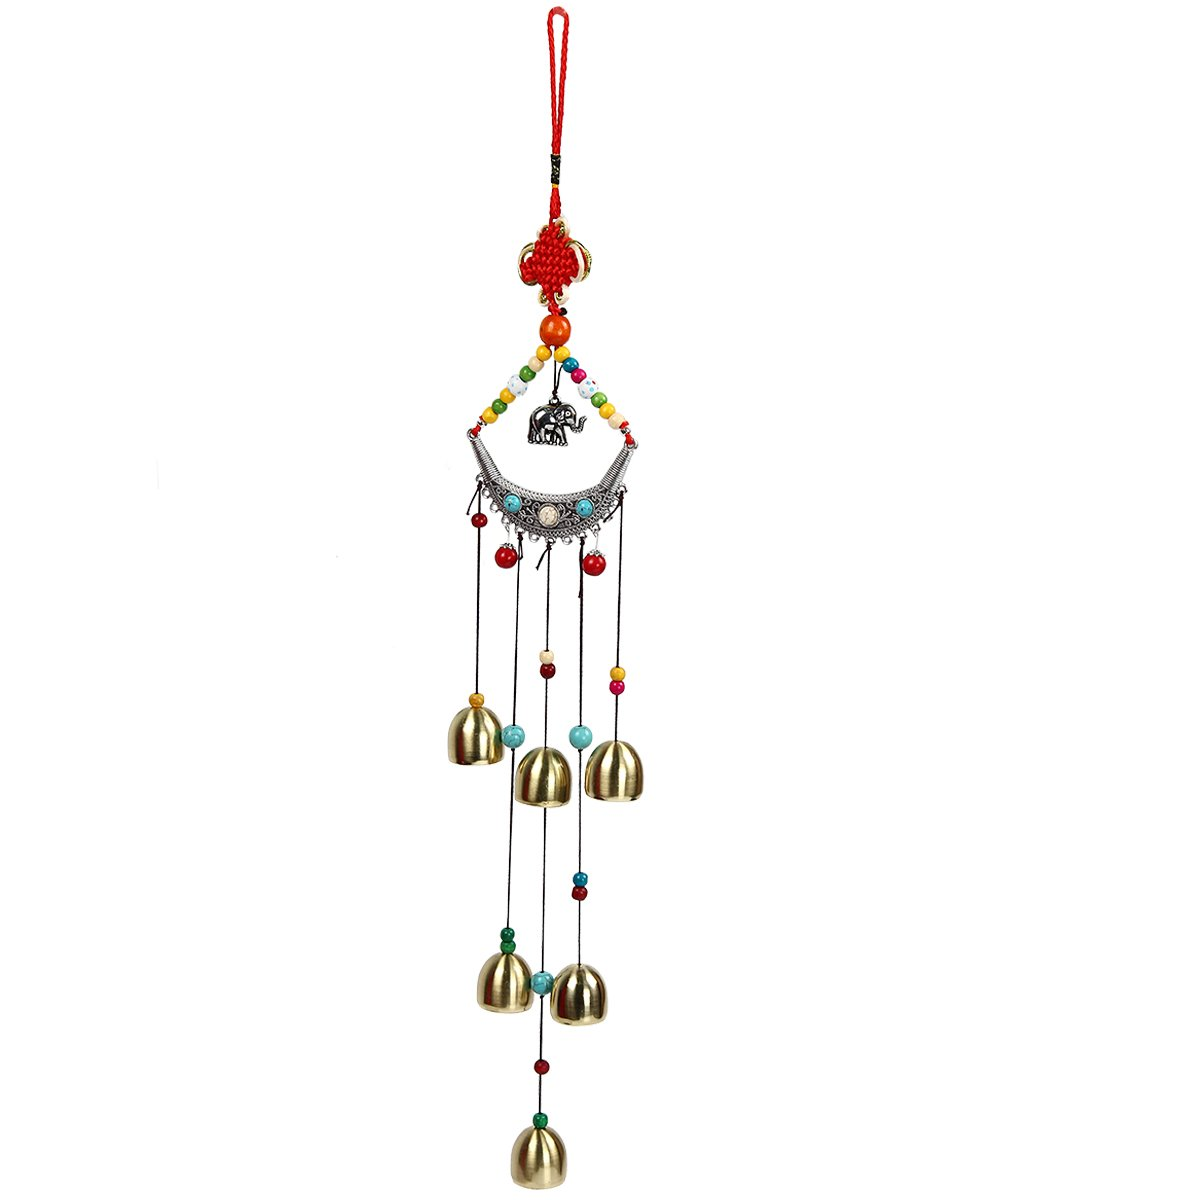 bouti1583 Tibetan Wind Chimes with 8 Bells Chinese Knot Mascot Luck Outdoor Decor Garden Patio 18.5''